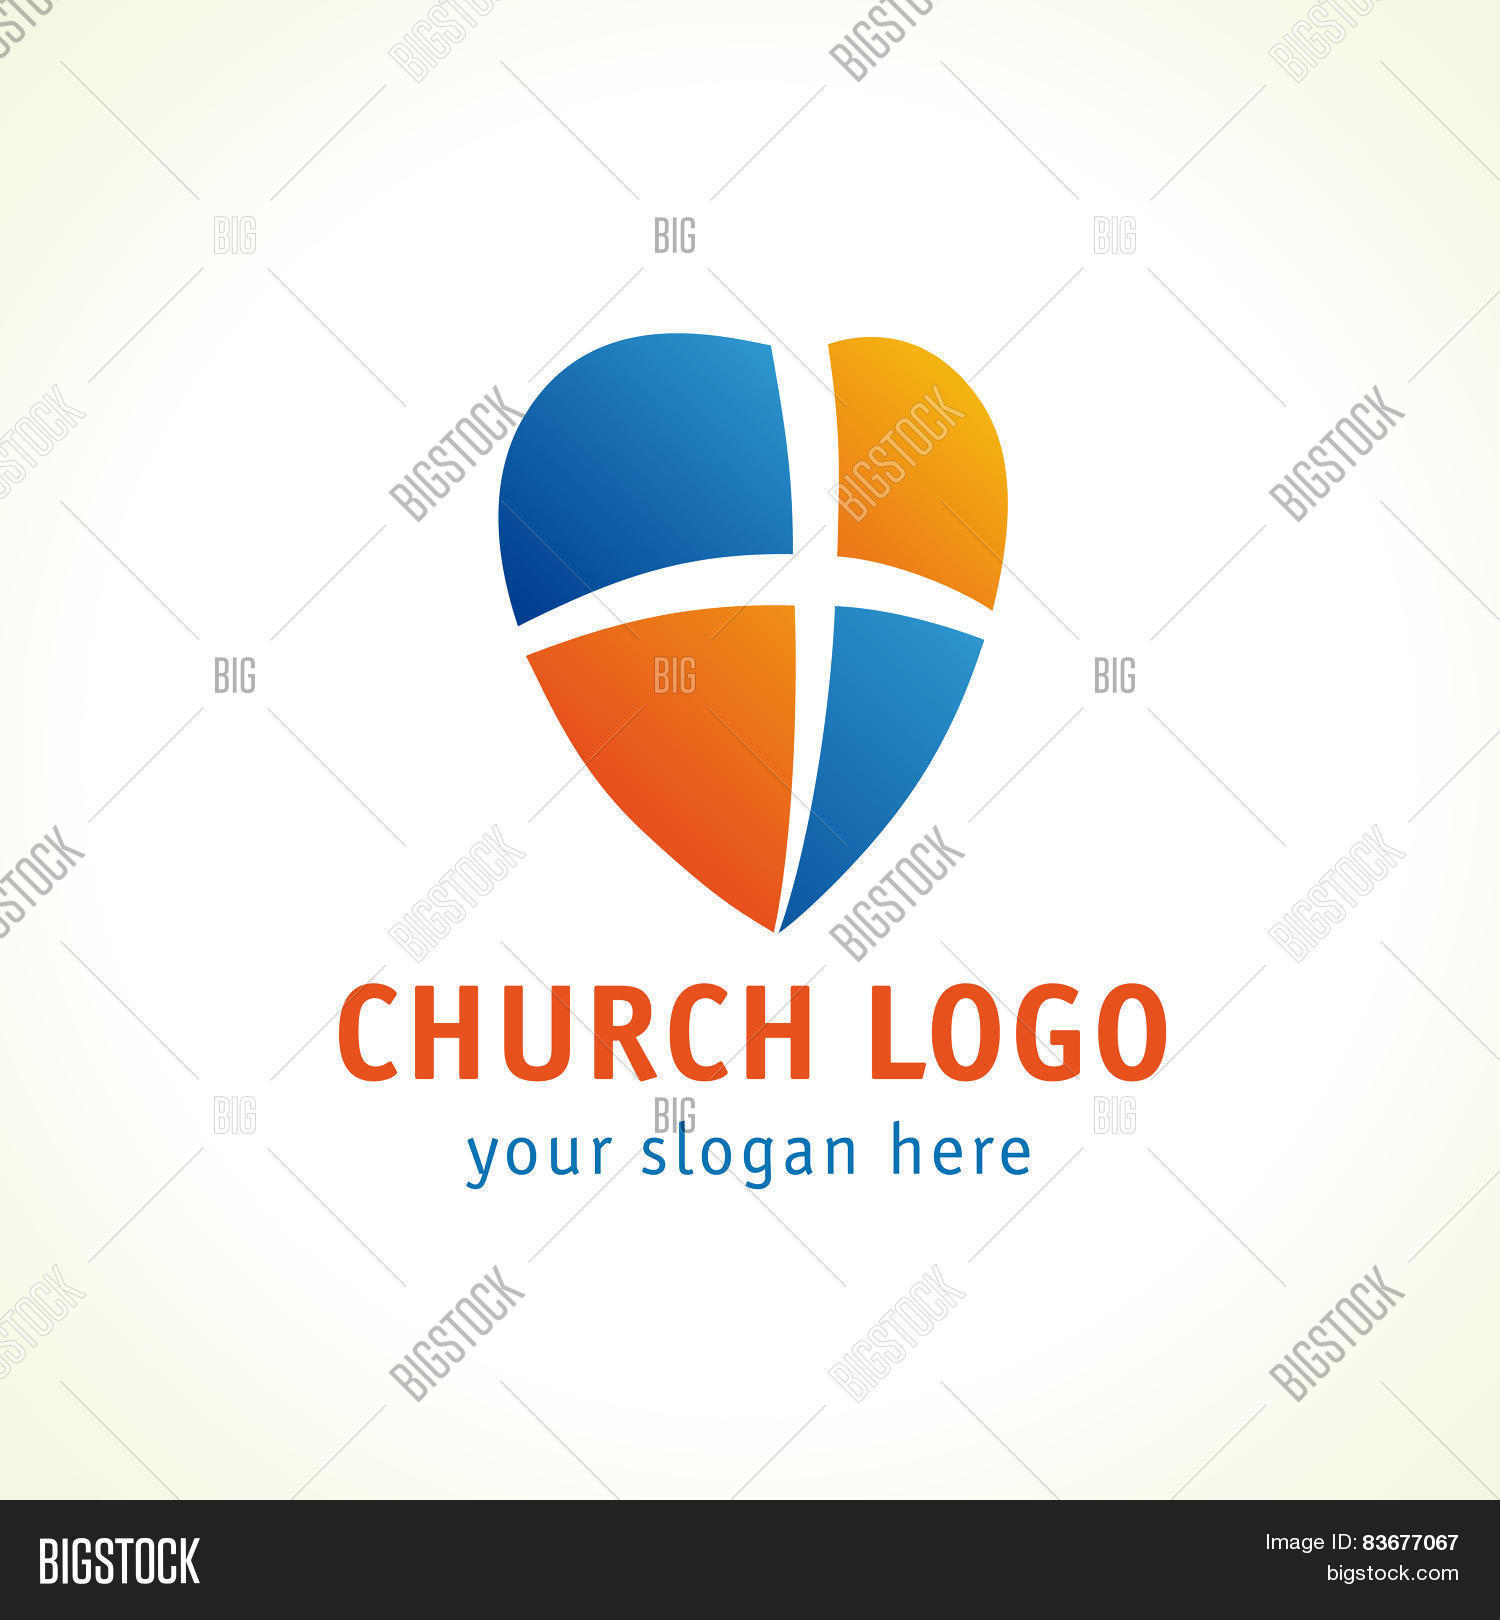 Christian Church Vector Photo Free Trial Bigstock